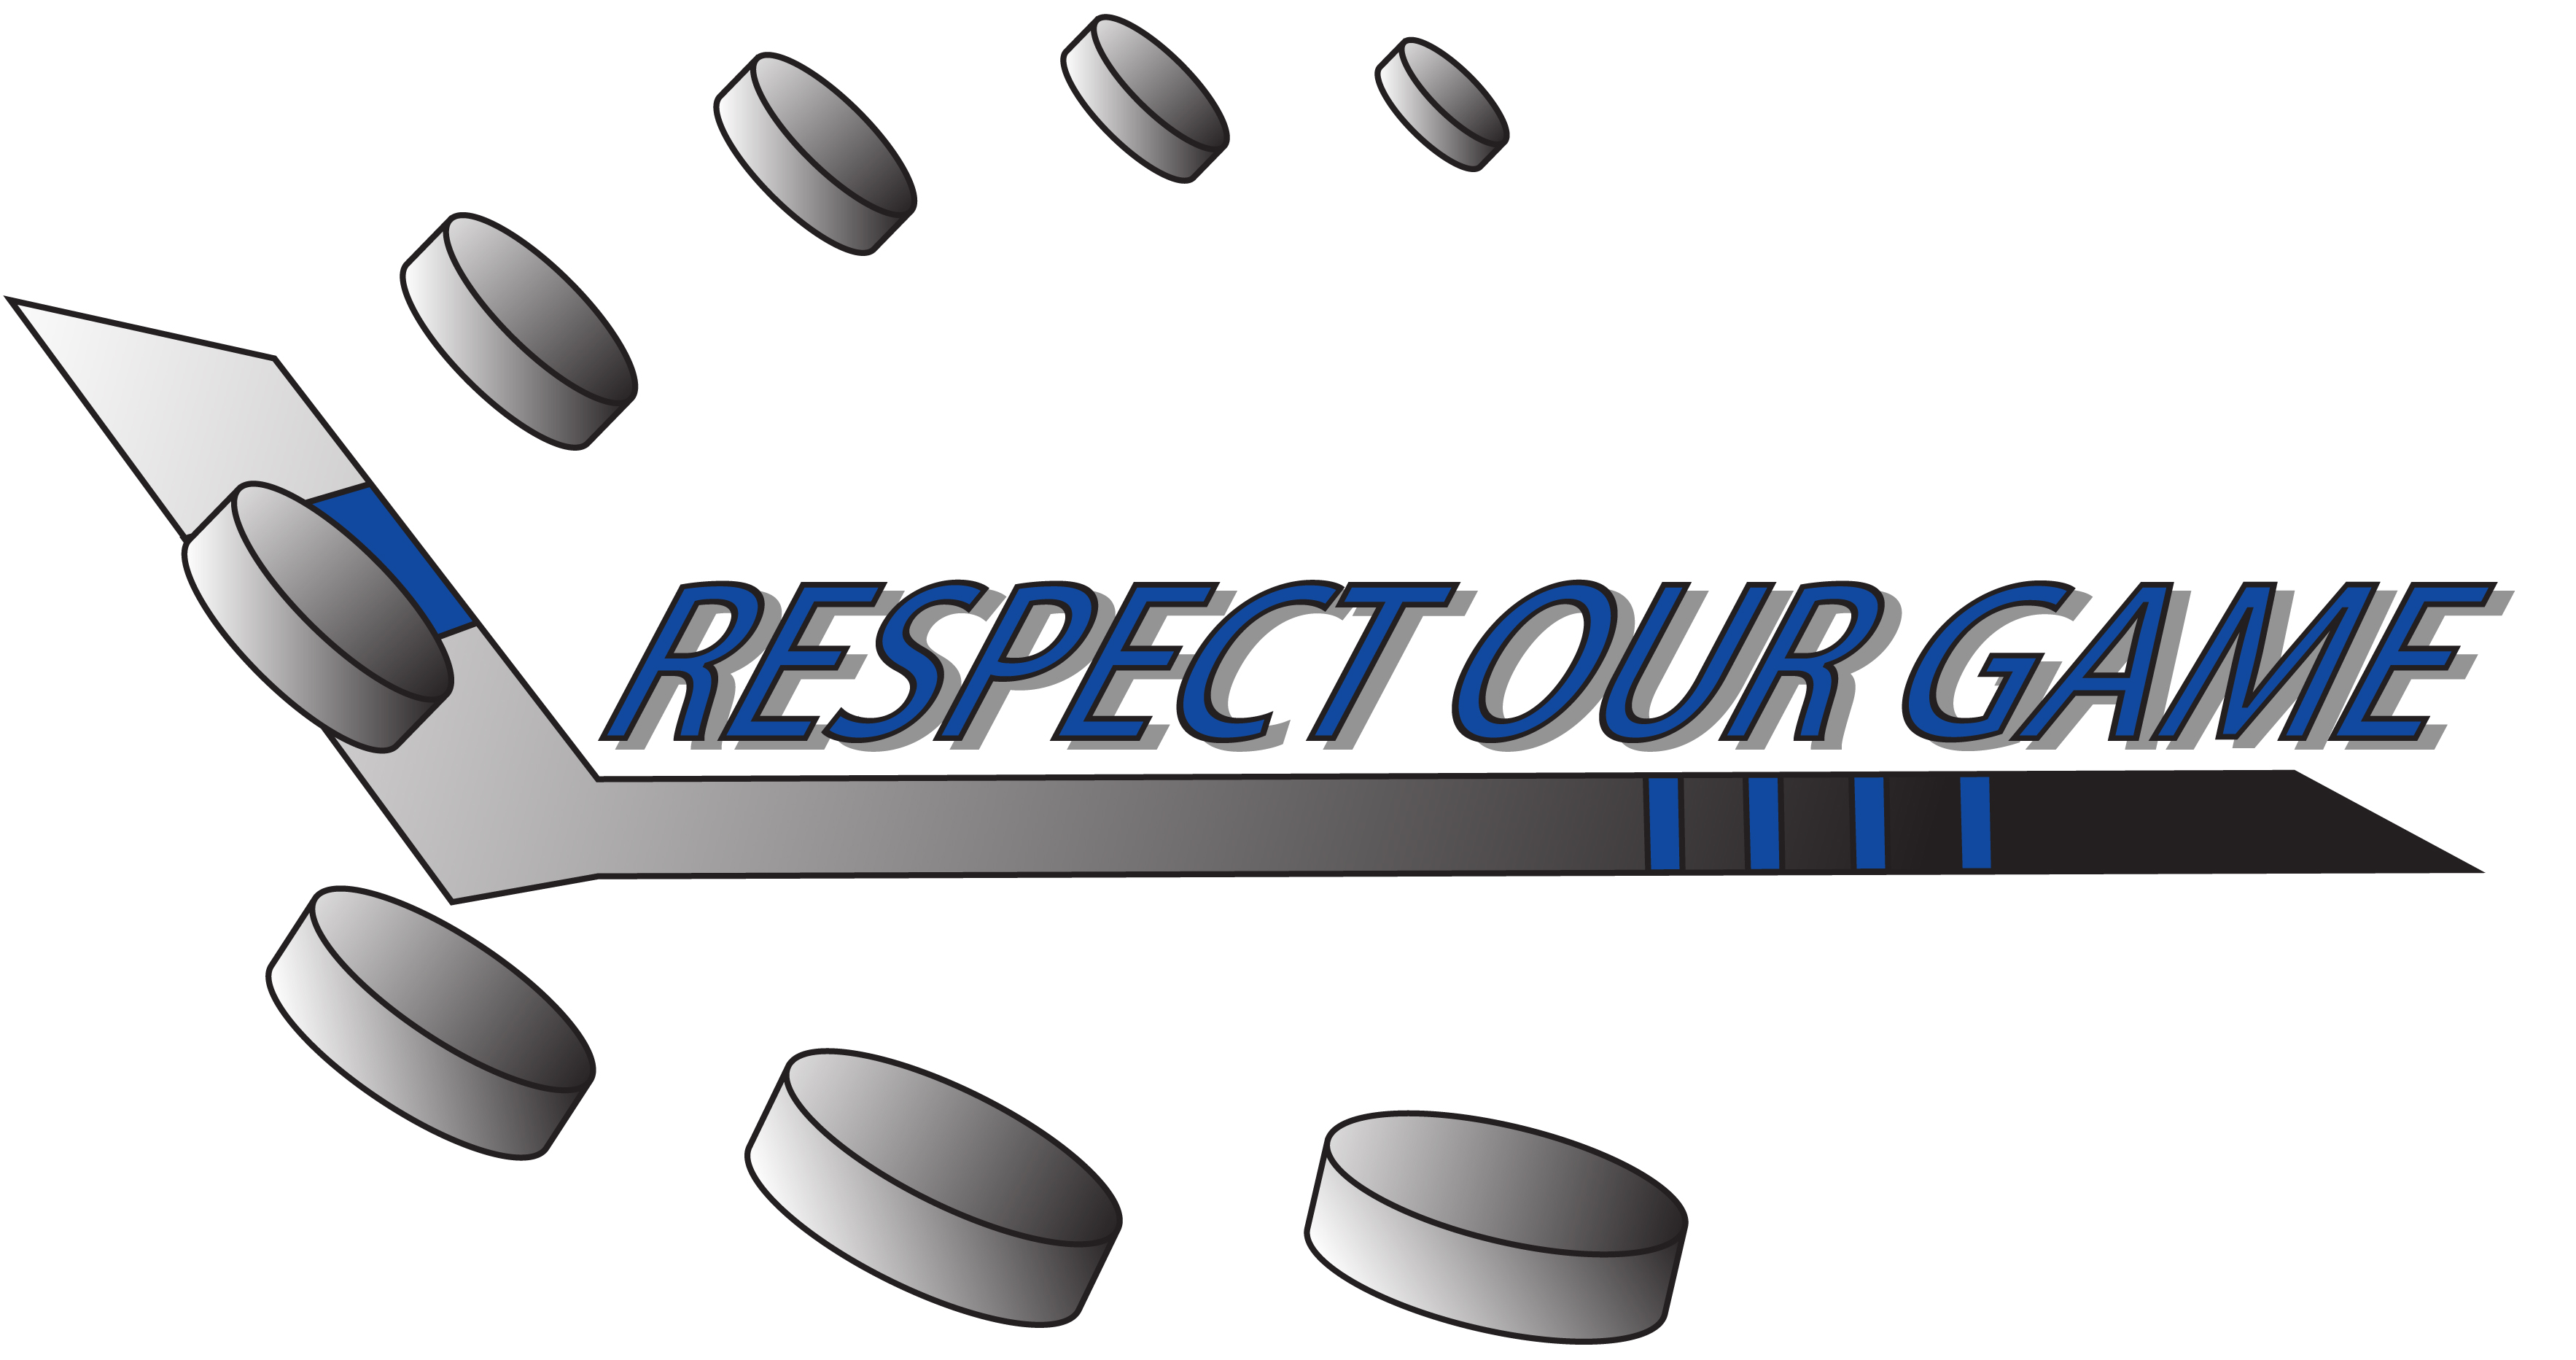 Logo Design by Genesis Orland Colendres - Entry No. 2 in the Logo Design Contest Respect our game - North Van Minor Hockey Logo Design.